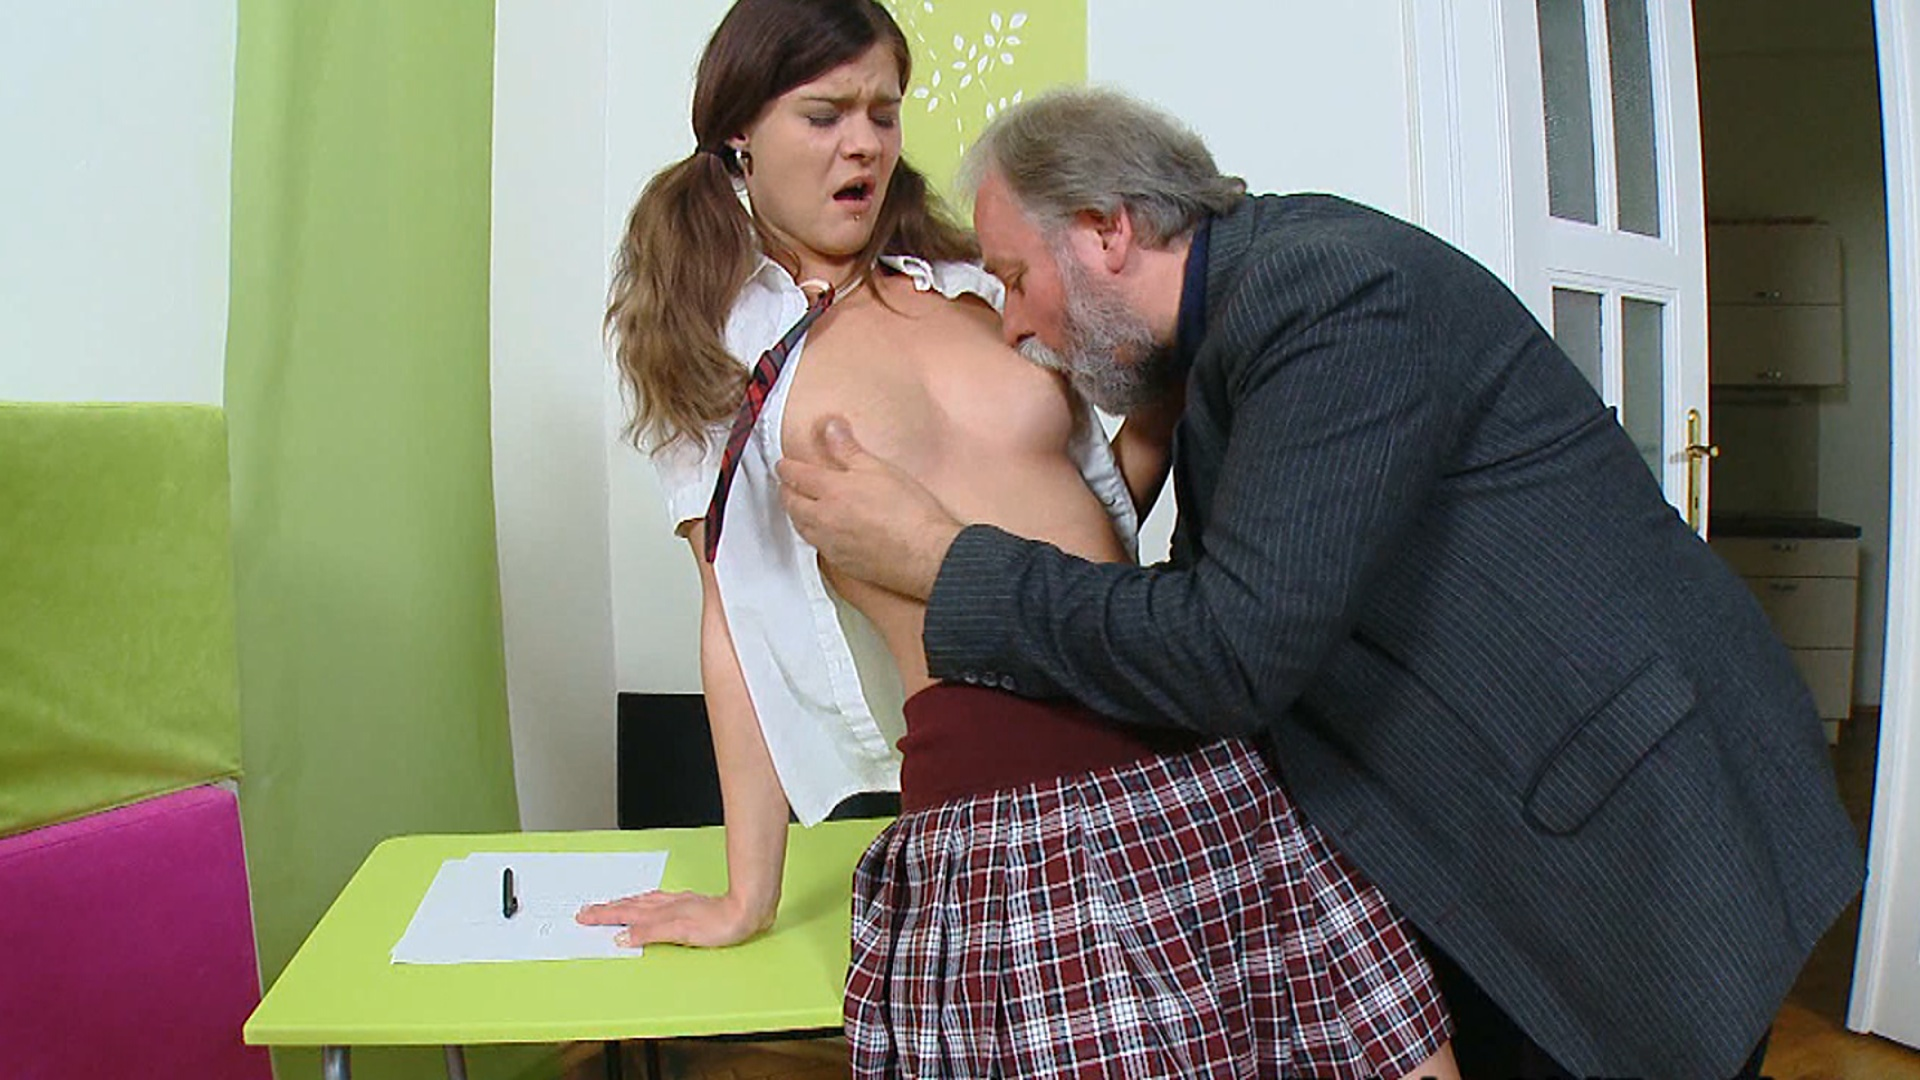 Nadya has her legs spread wide open on the desk and fucked hard by him in class.